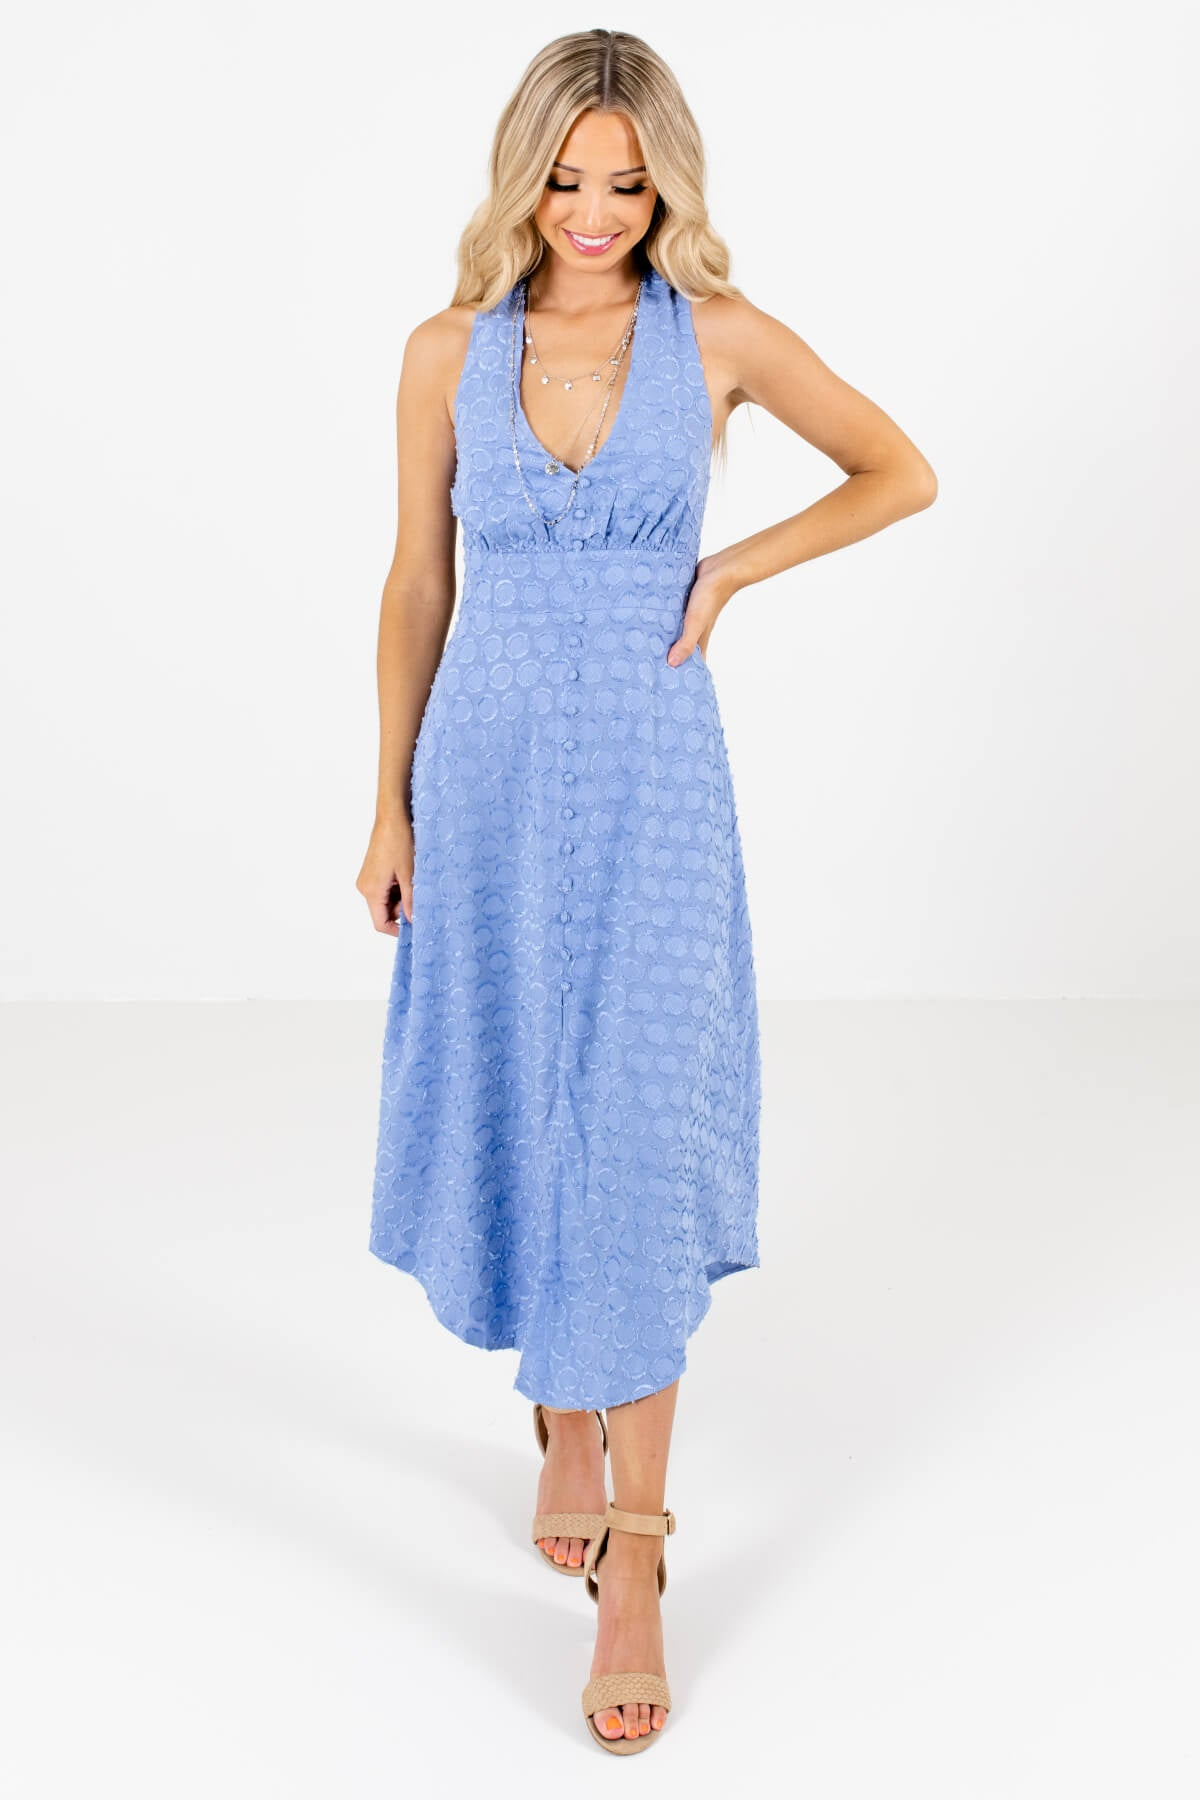 Light Blue Textured Material Boutique Midi Dresses for Women